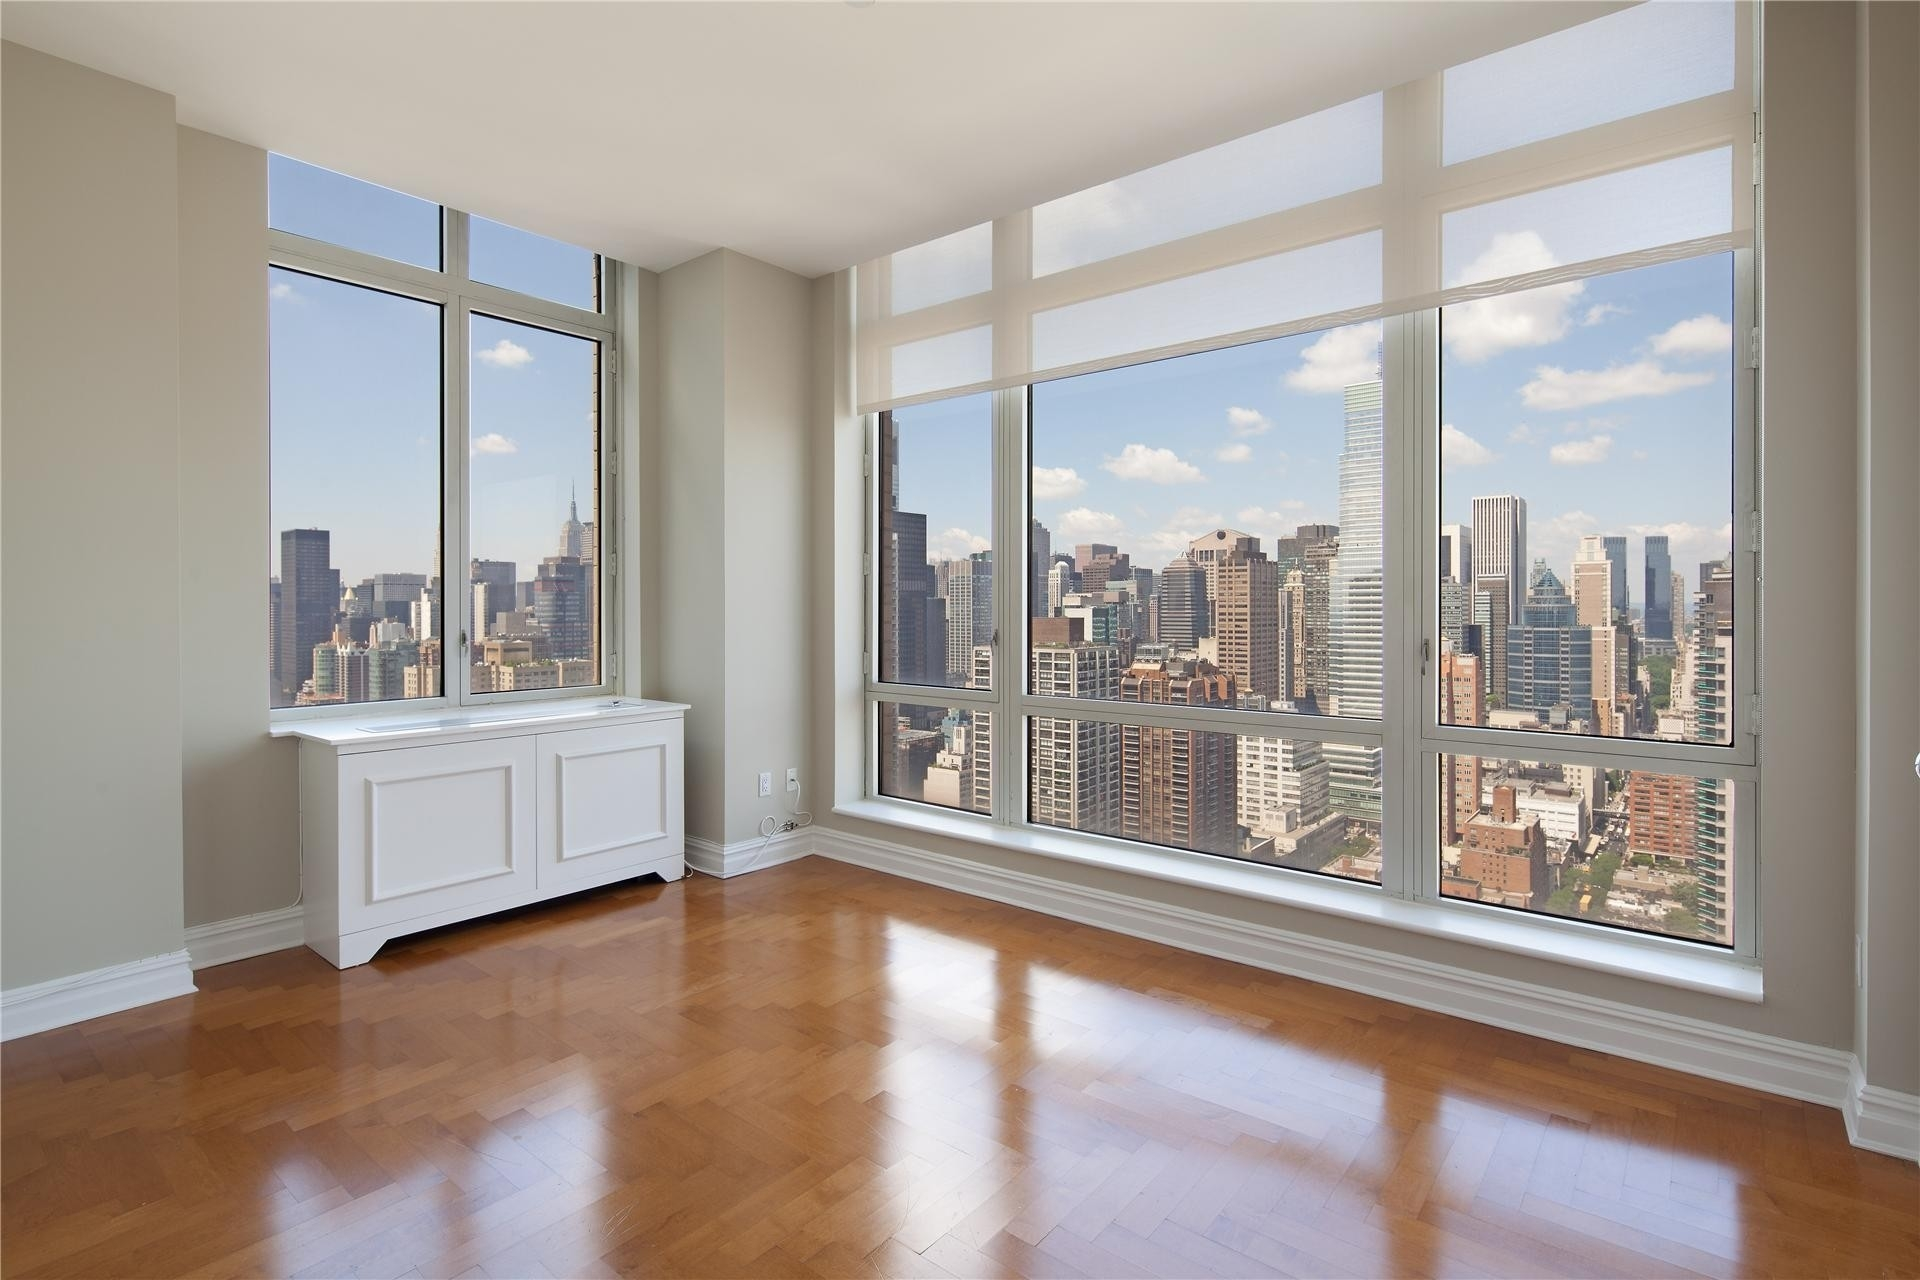 Property at 401 East 60th St, 38AB New York